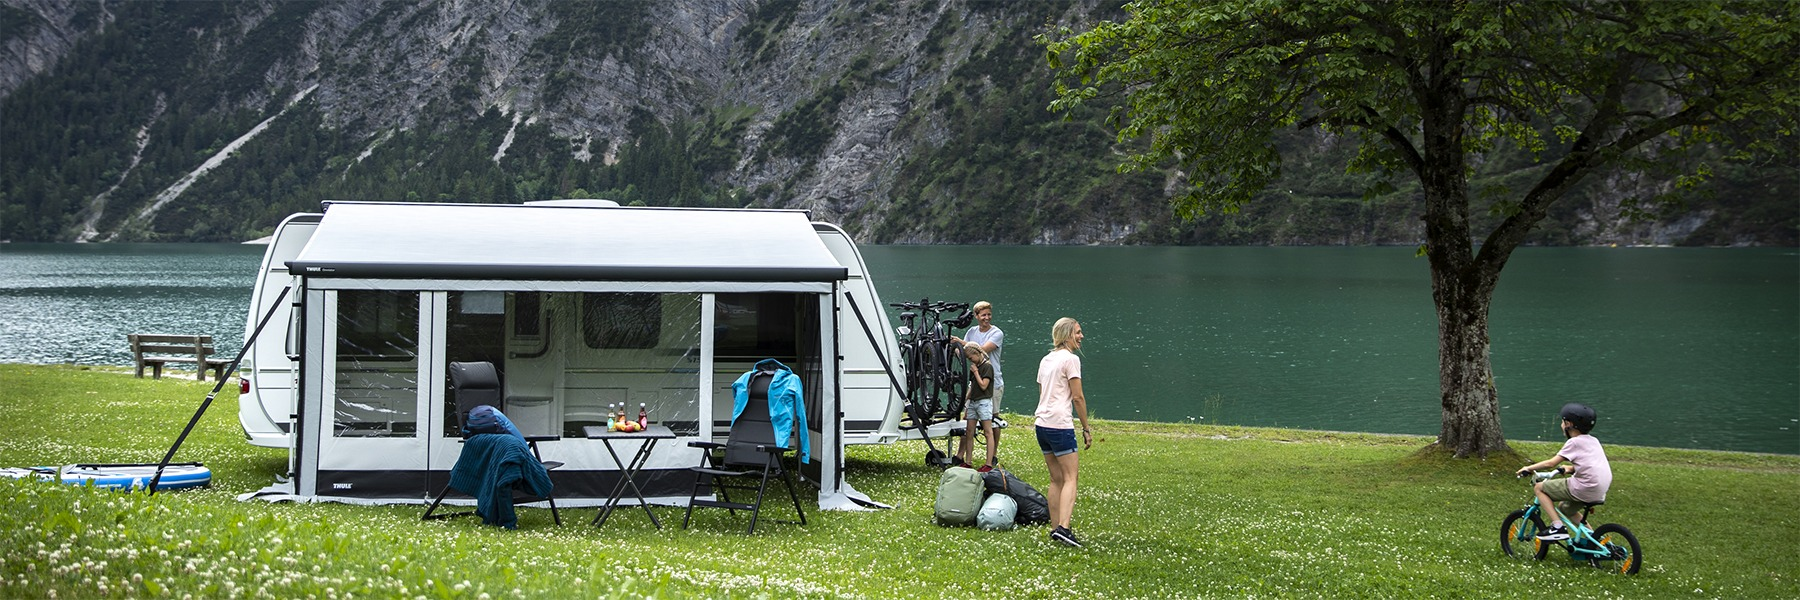 touring adventure thule awnings